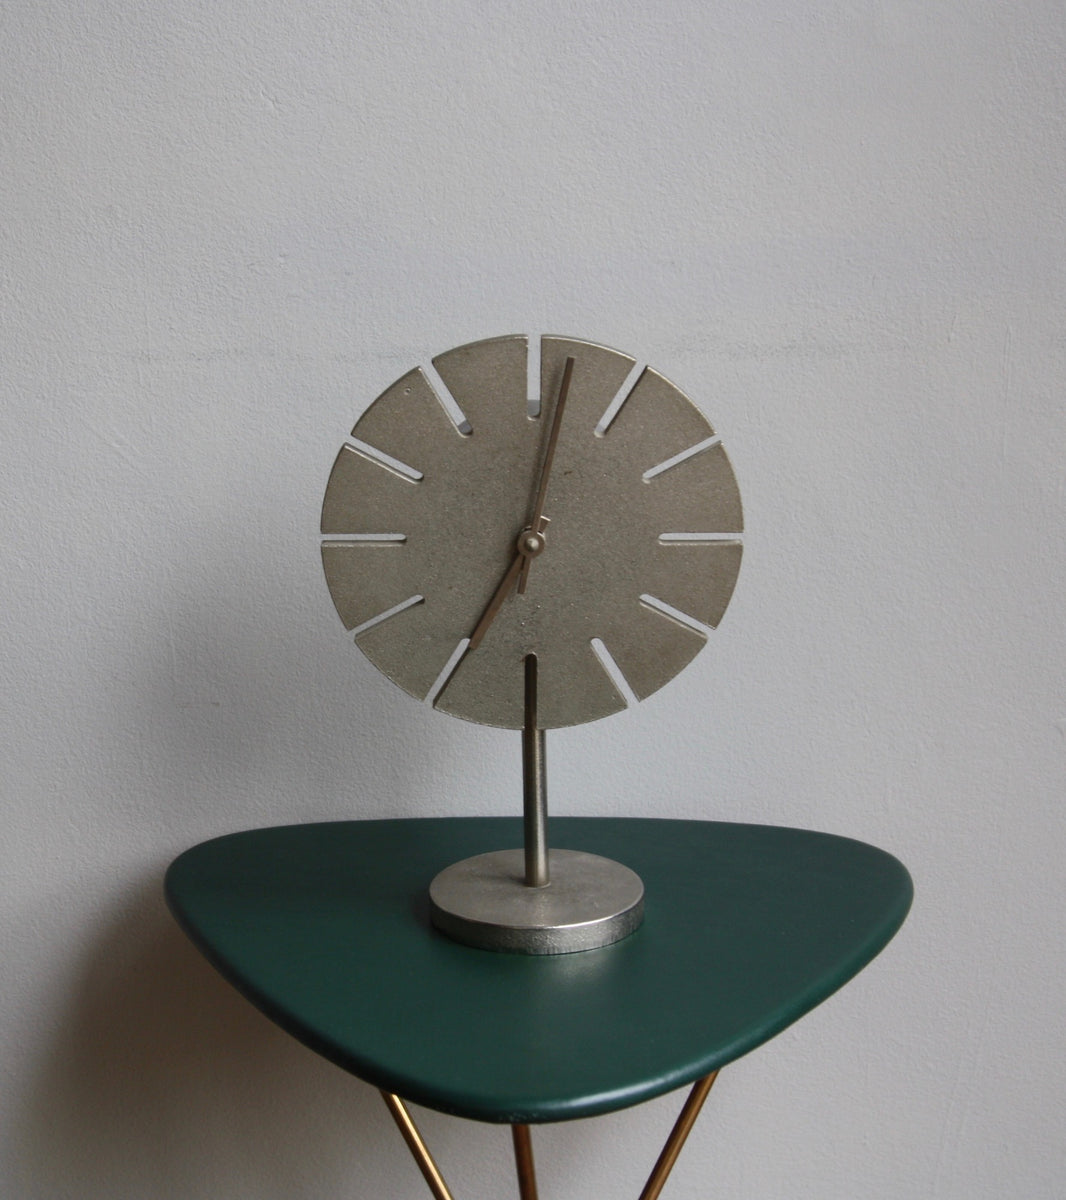 Cast Nickel Table Clock Carl Auböck - Image 1